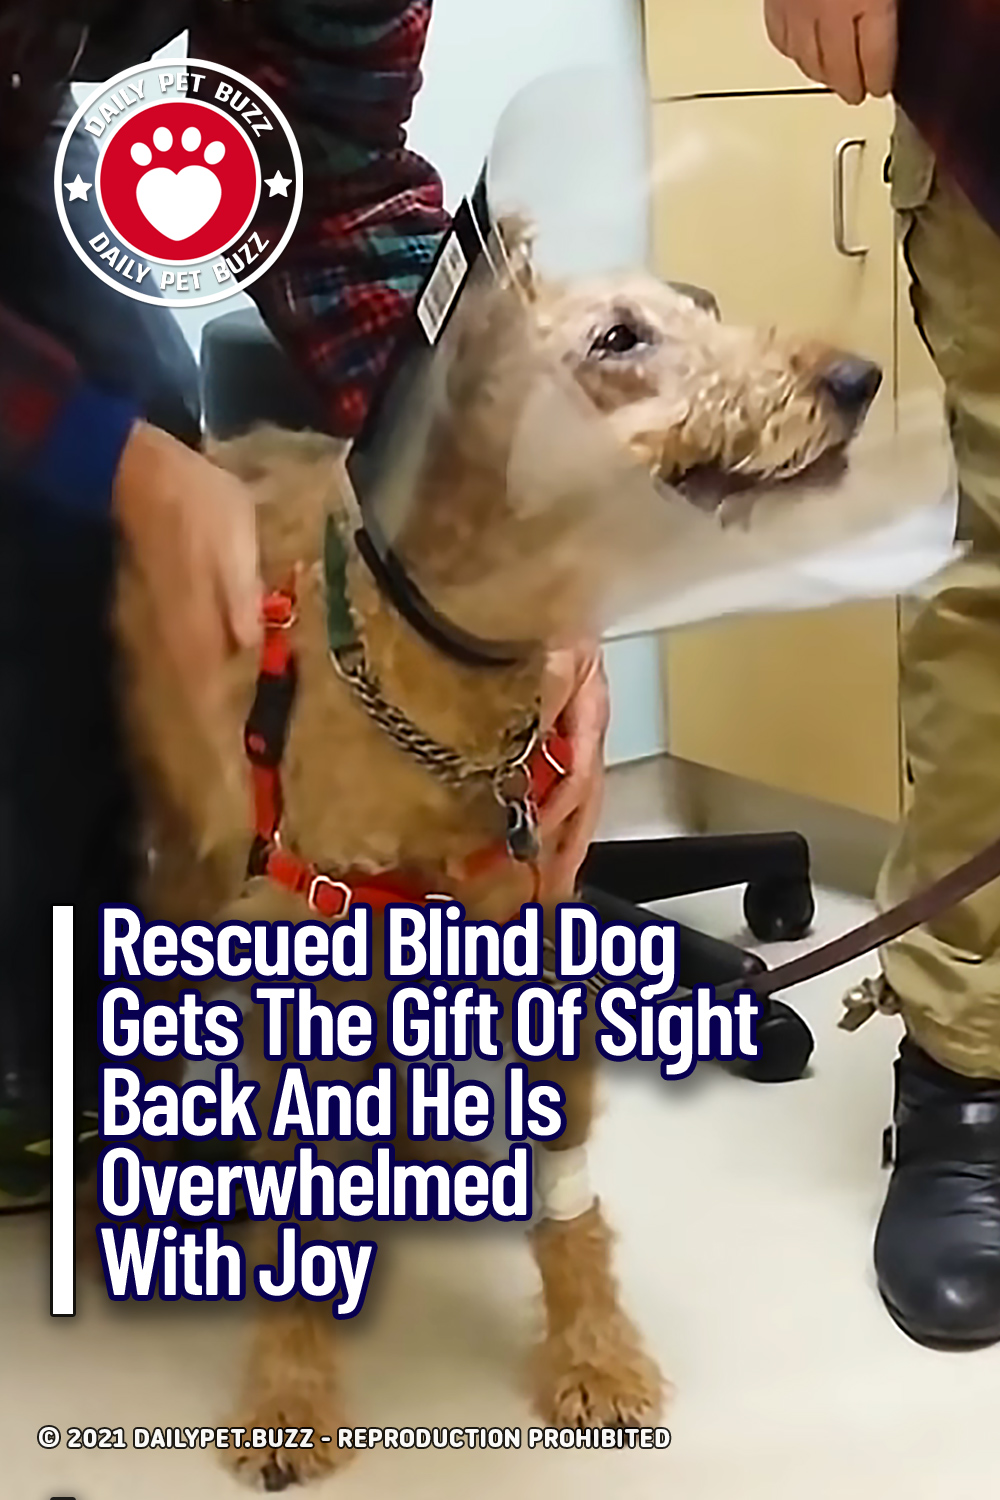 Rescued Blind Dog Gets The Gift Of Sight Back And He Is Overwhelmed With Joy